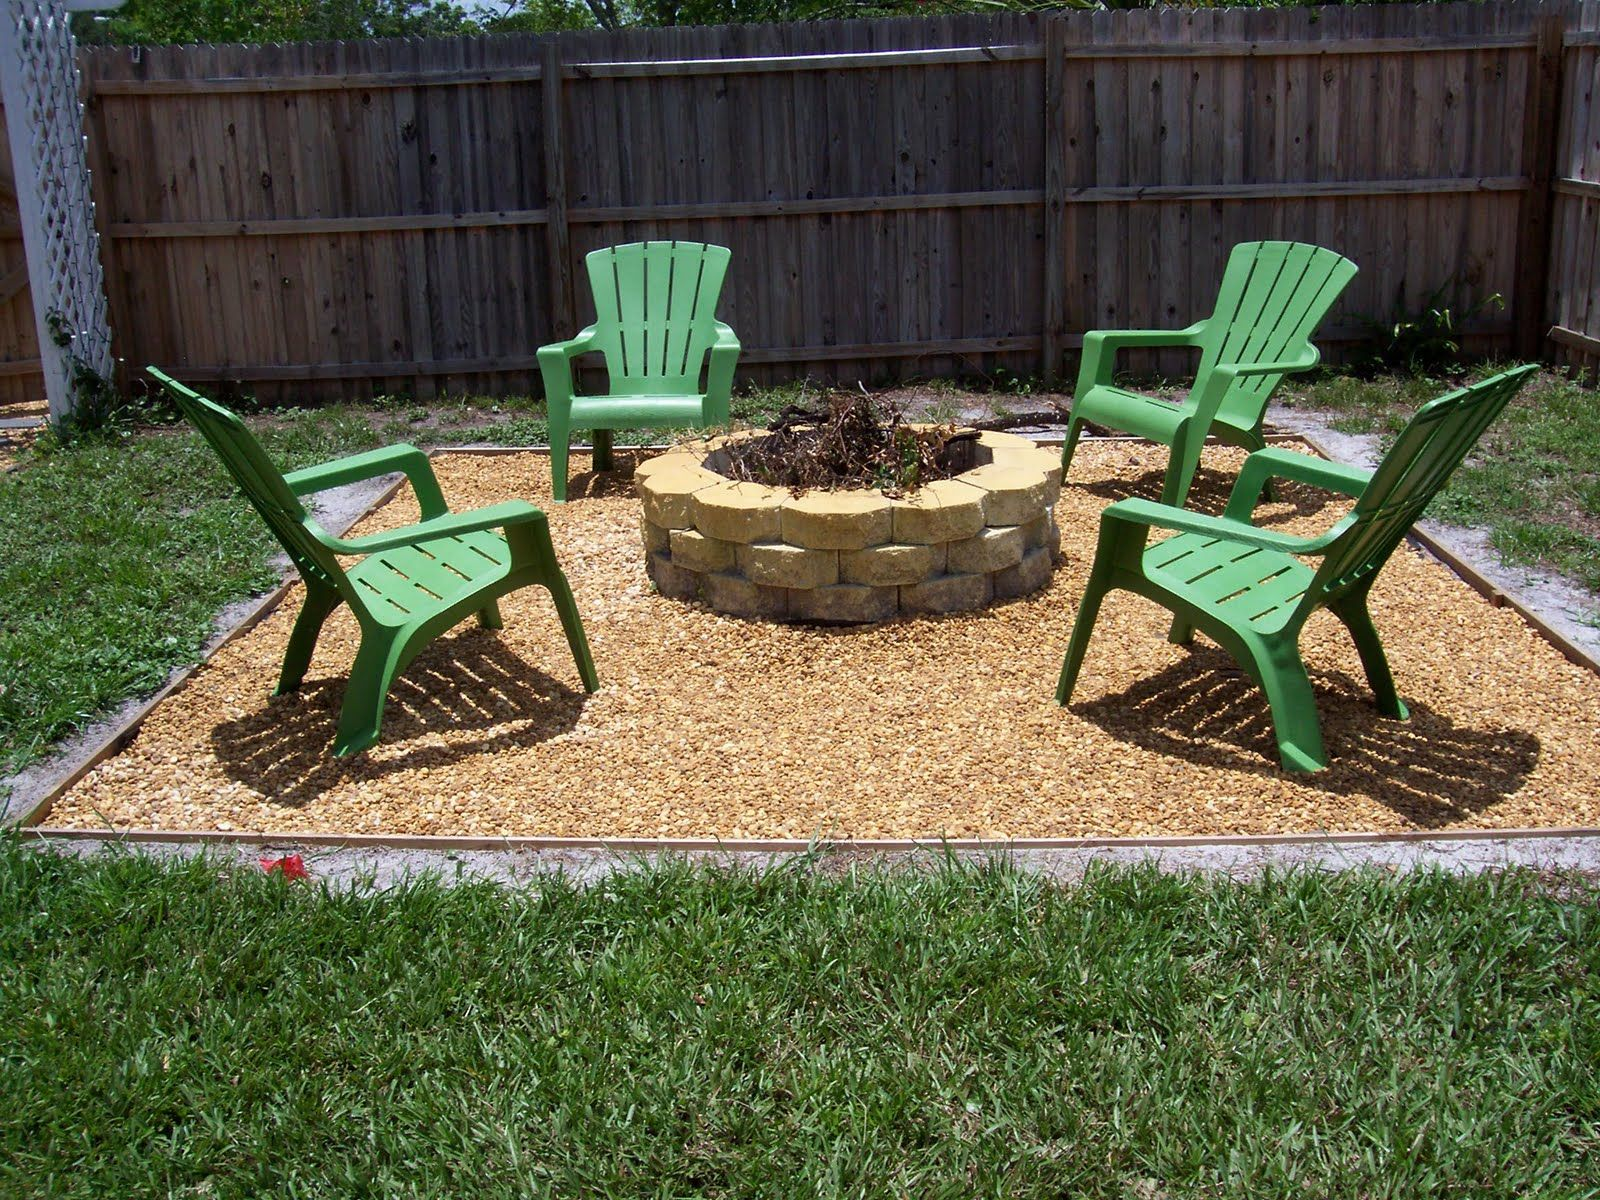 Garden Design With Fire Pits Denver Cheap And Outdoor Fire Bowls Simple  Home Backyard With Backyards